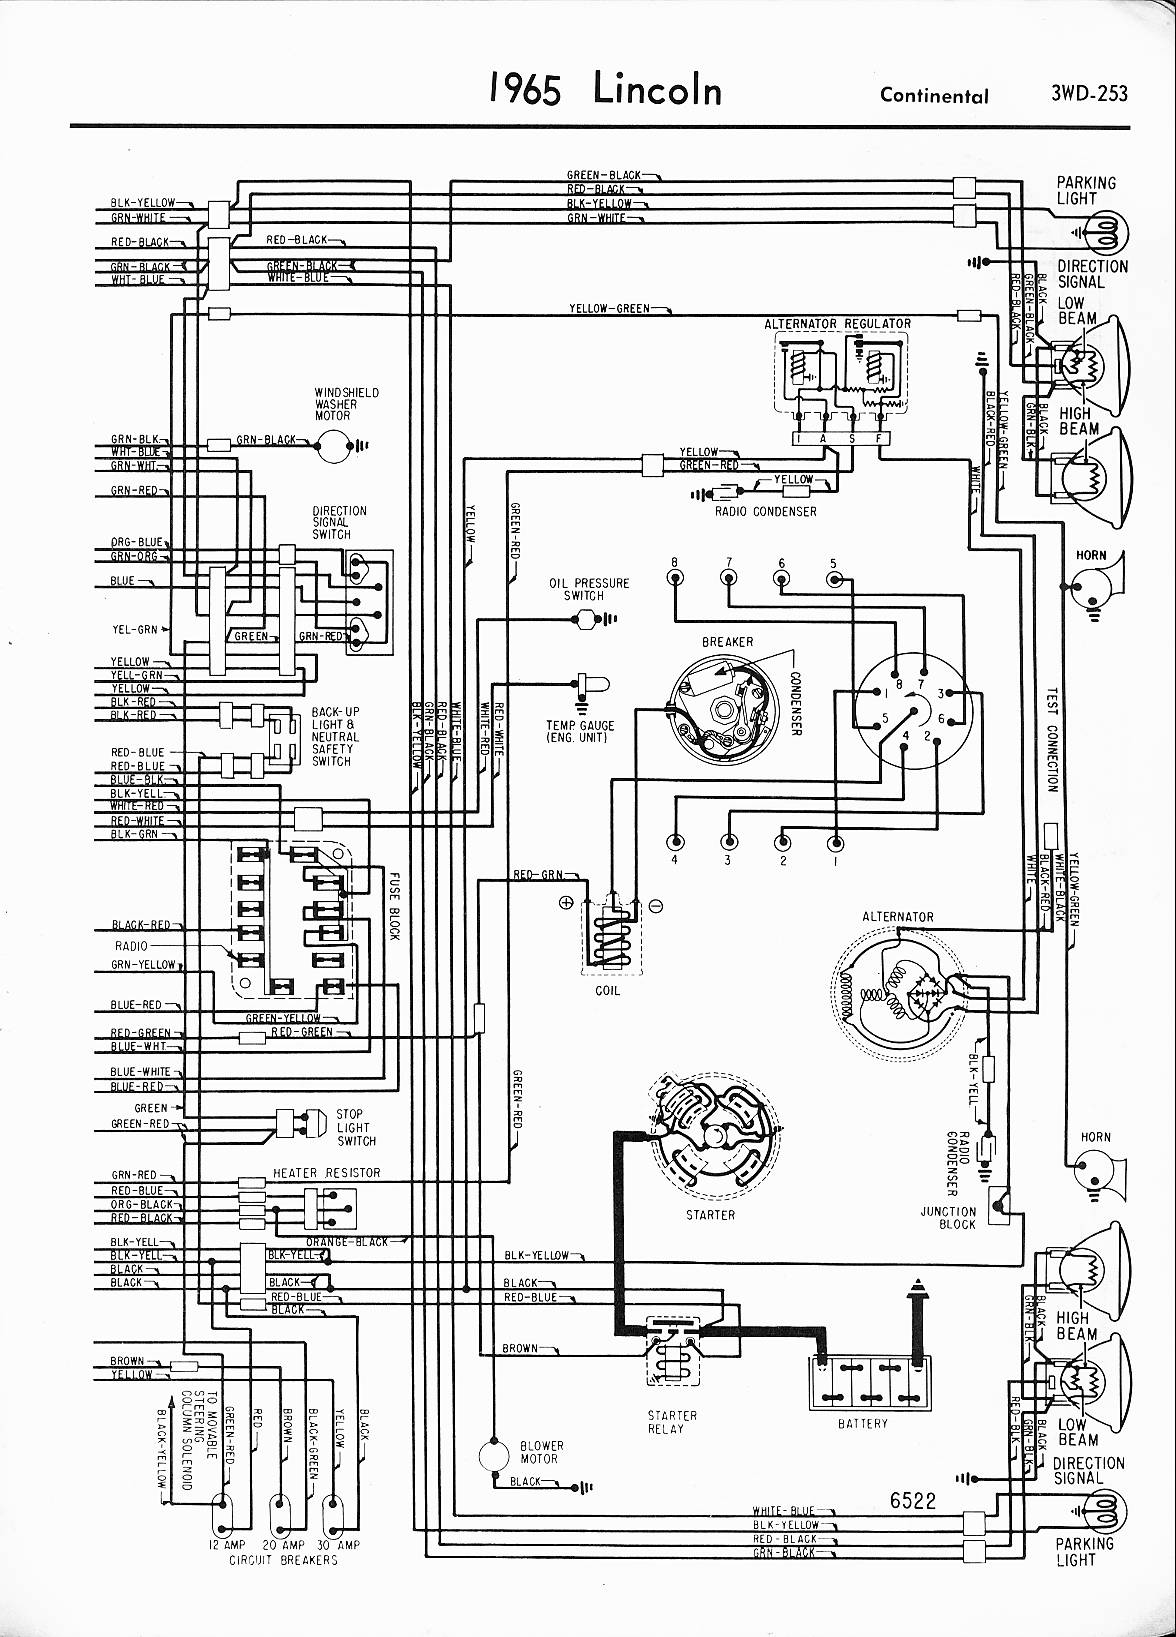 Lincoln Power Window Switch Wiring Diagram For 1989 Library Half Switched Schematic 1965 Right